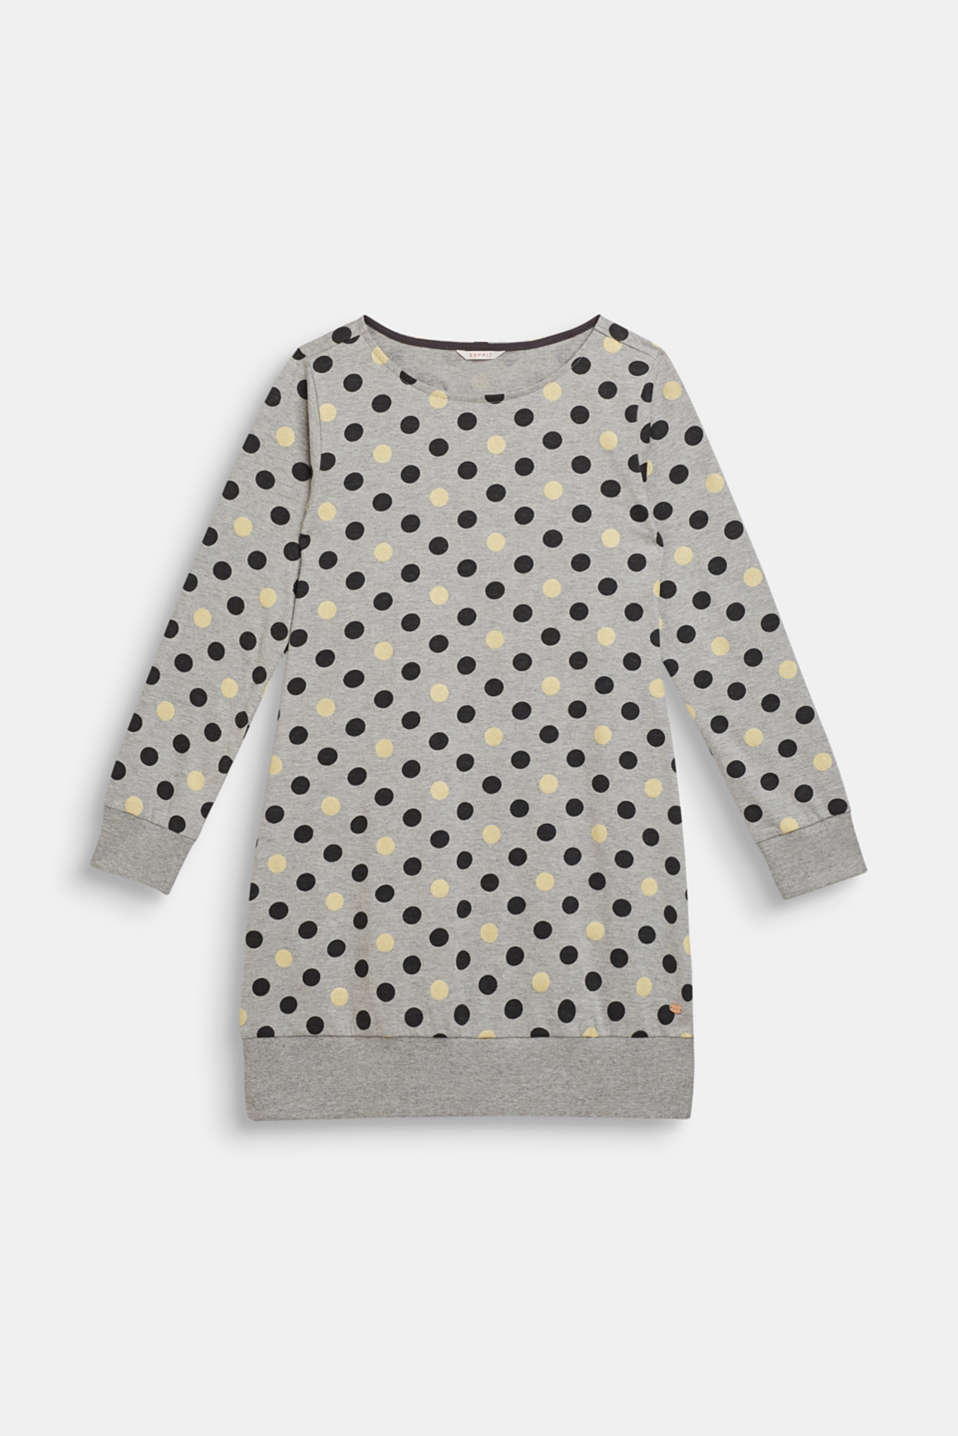 Esprit - Nightshirt with glitter polka dots